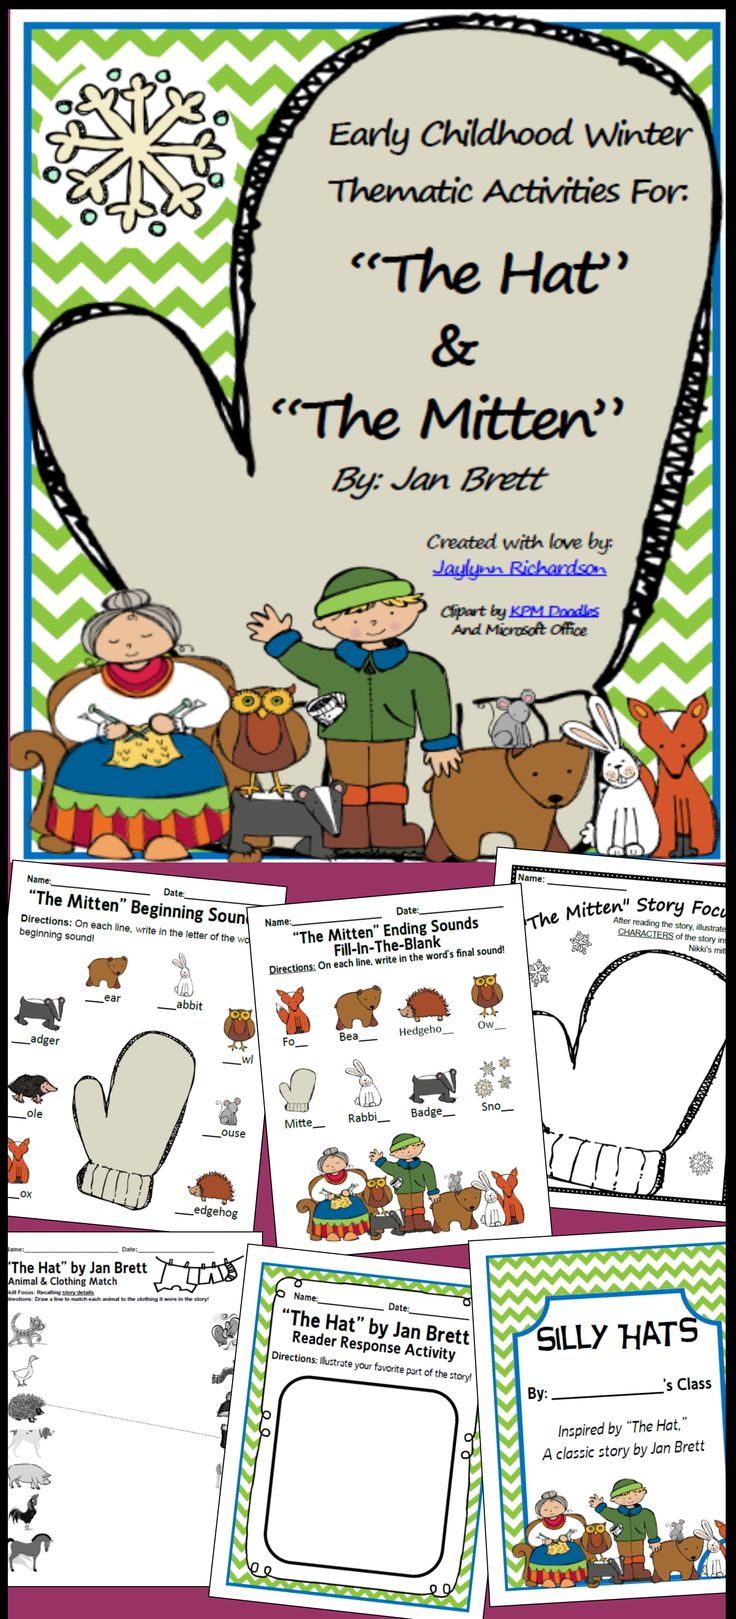 Worksheet Kindergarten Enrichment Ideas 1000 images about file folder games on pinterest if you read these books to your early childhood students then this packet is a must for winter thematic activities th